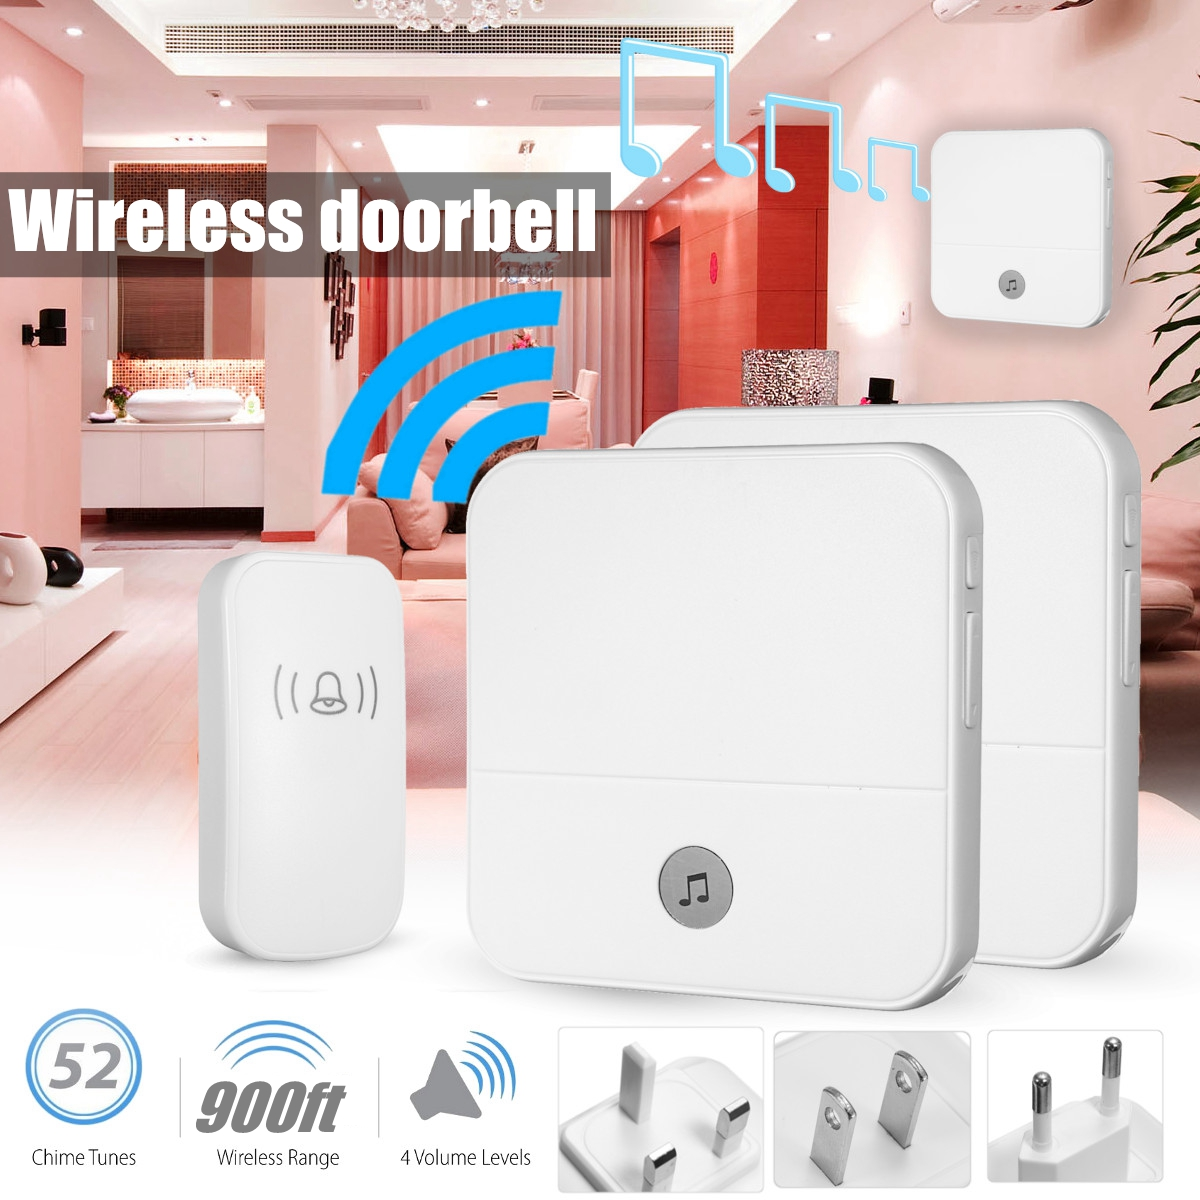 New Wireless Doorbell Waterproof 900ft Remote EU UK US Plug smart Door Bell 1 button 2 receiver AC 90~250V wireless cordless digital doorbell remote door bell chime waterproof eu us uk au plug 110 220v